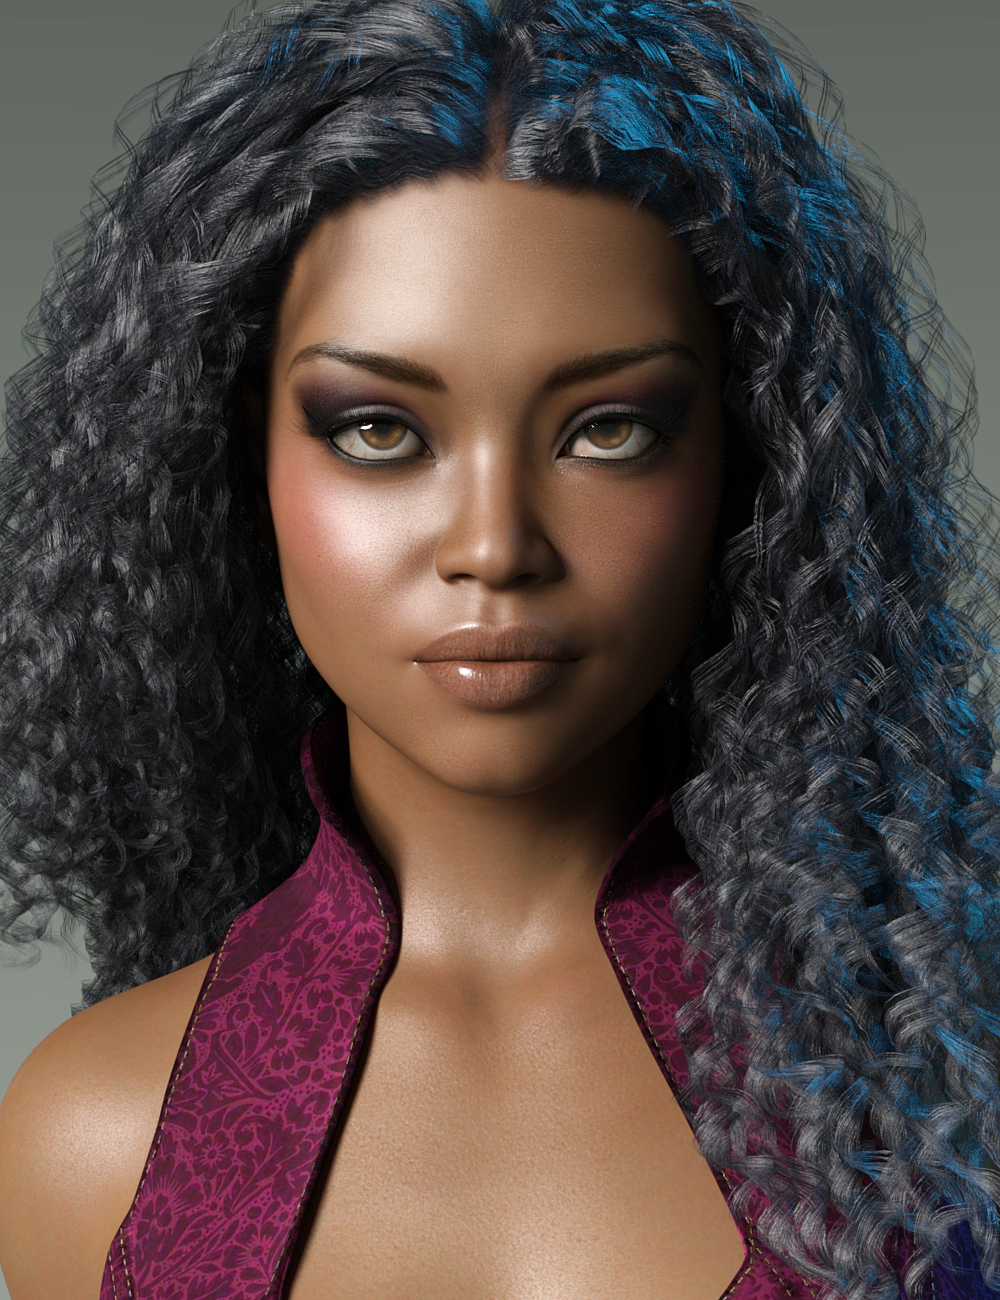 Chamani for Nida 8 by: JessaiiAdiene, 3D Models by Daz 3D